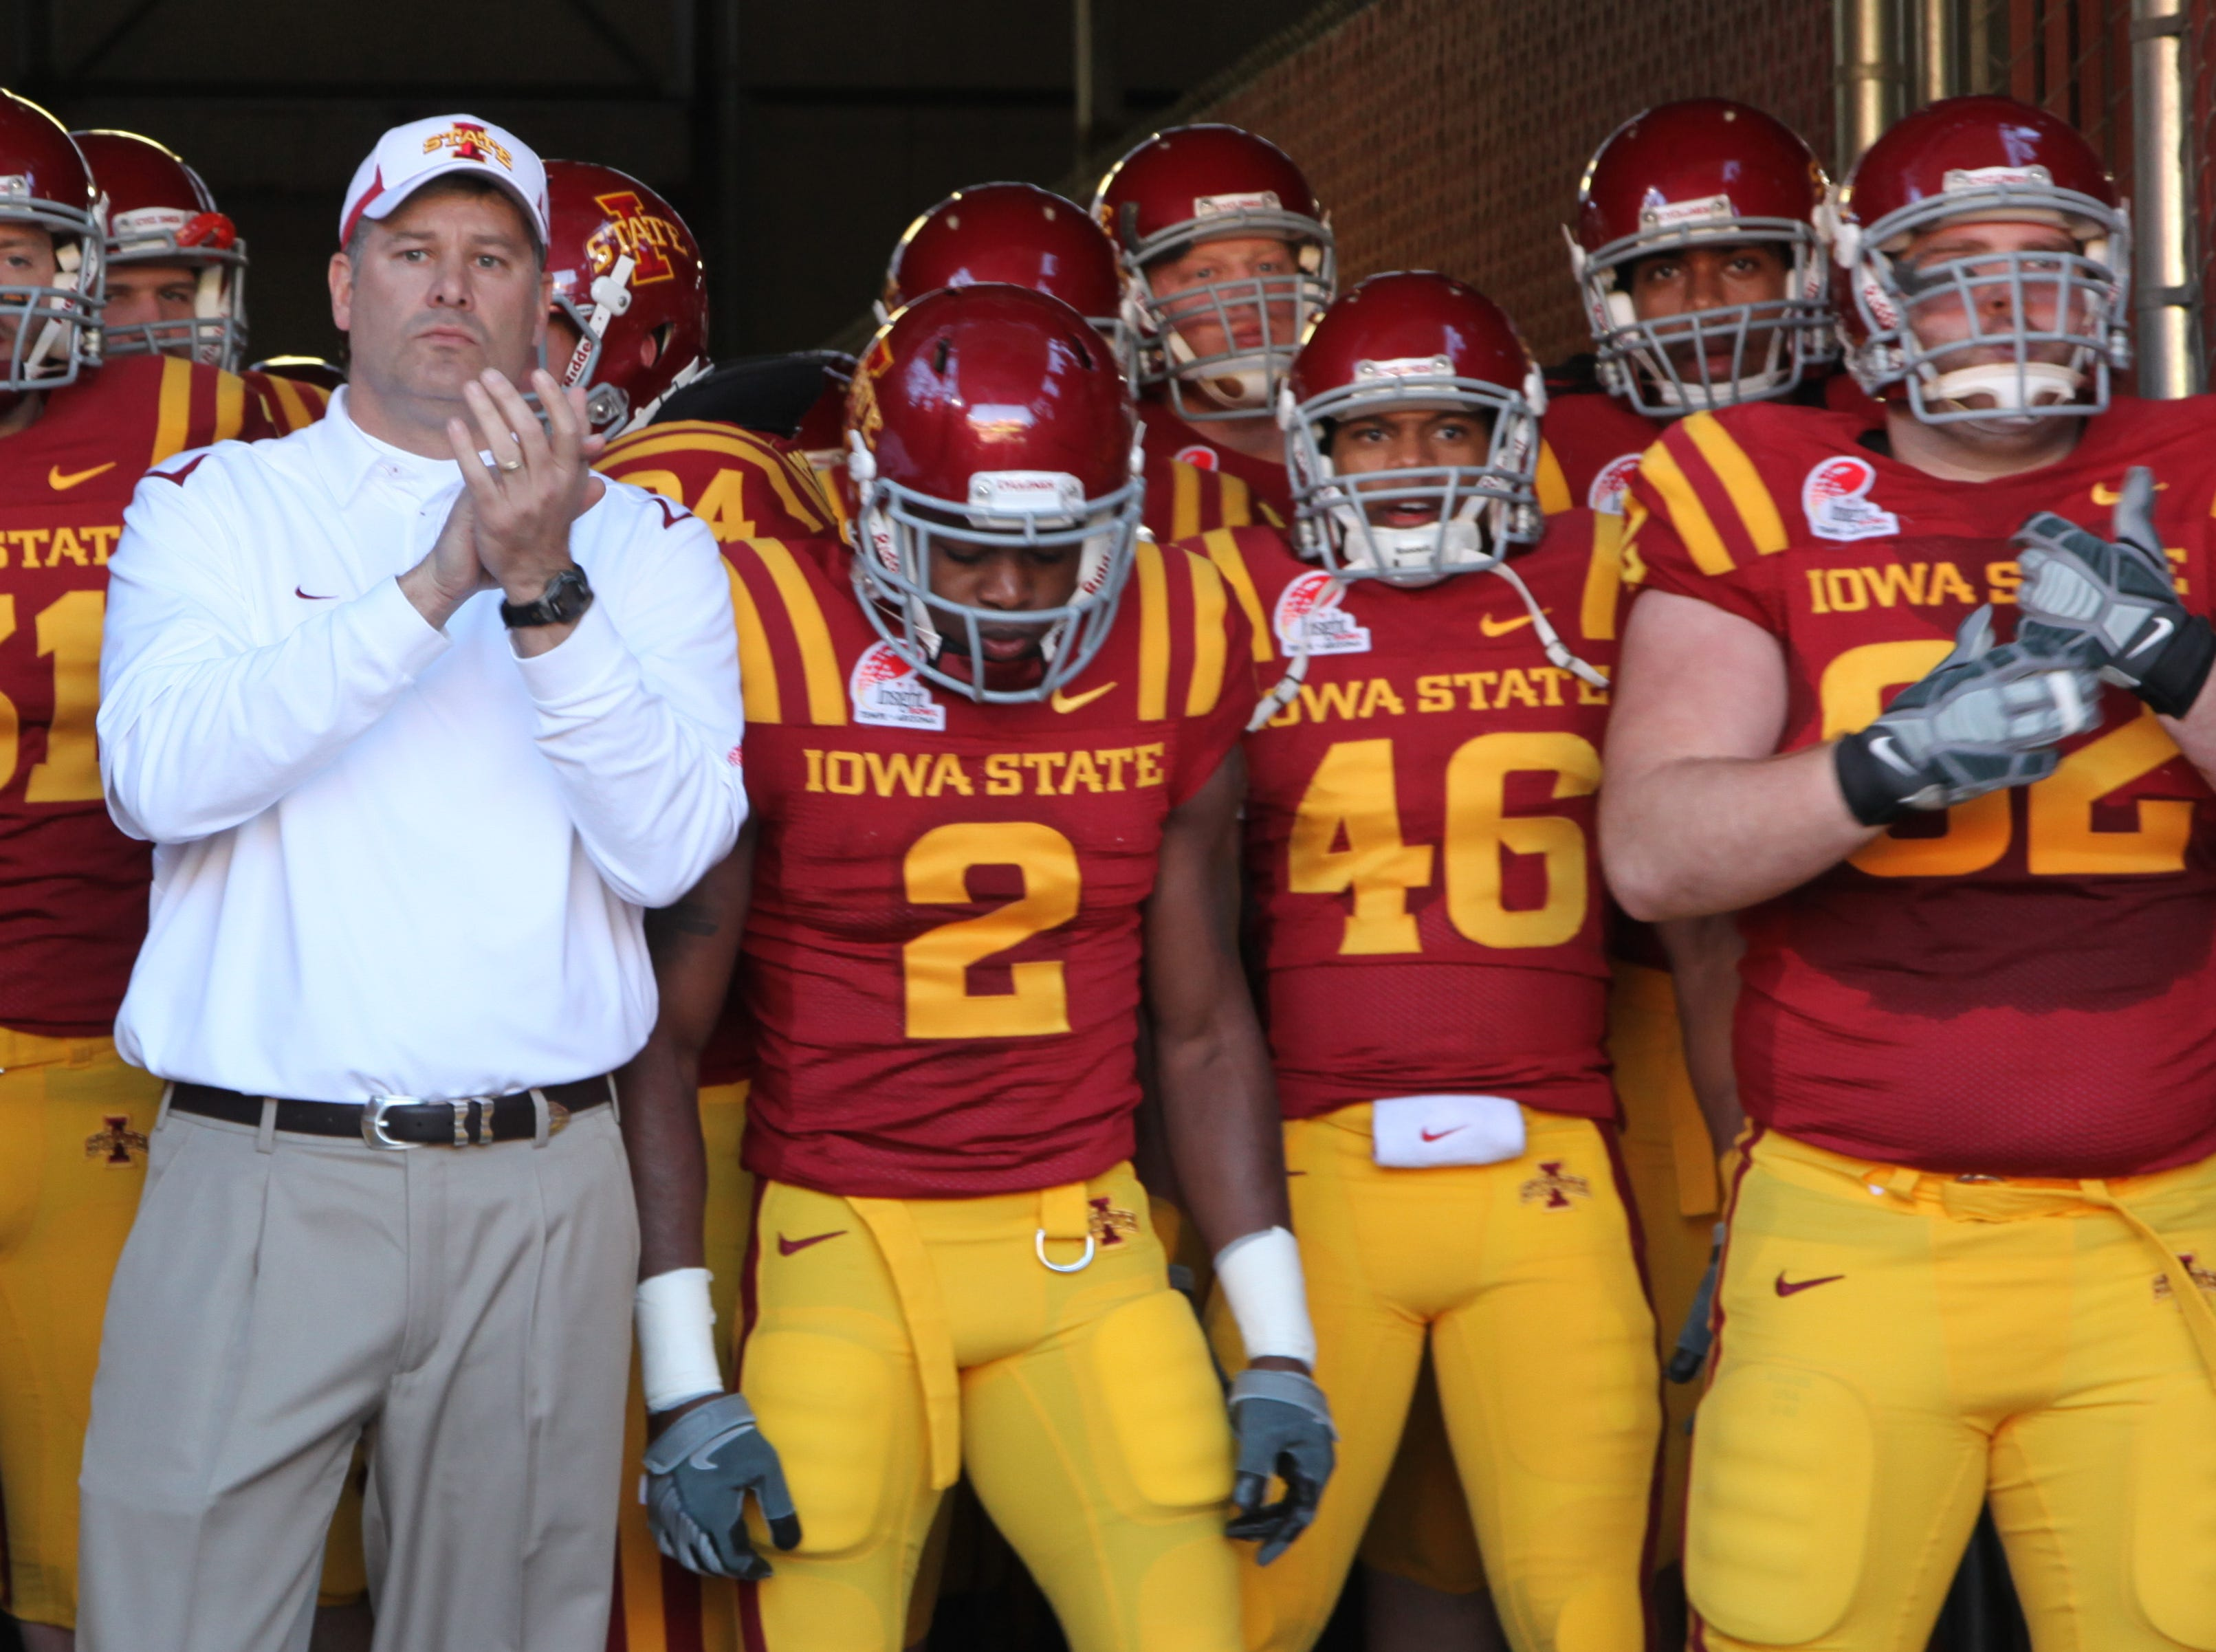 Iowa State Head Coach Paul Rhoads and his team wait in the the tunnel to take the field at the start of the game. Iowa State won 14-13. S0101ISUBowl -Iowa State University played Minnesota in the Insight Bowl in Tempe, Arizona, Thursday, December 31, 2009 at Sun Devil Stadium. (Andrea Melendez/The Register)